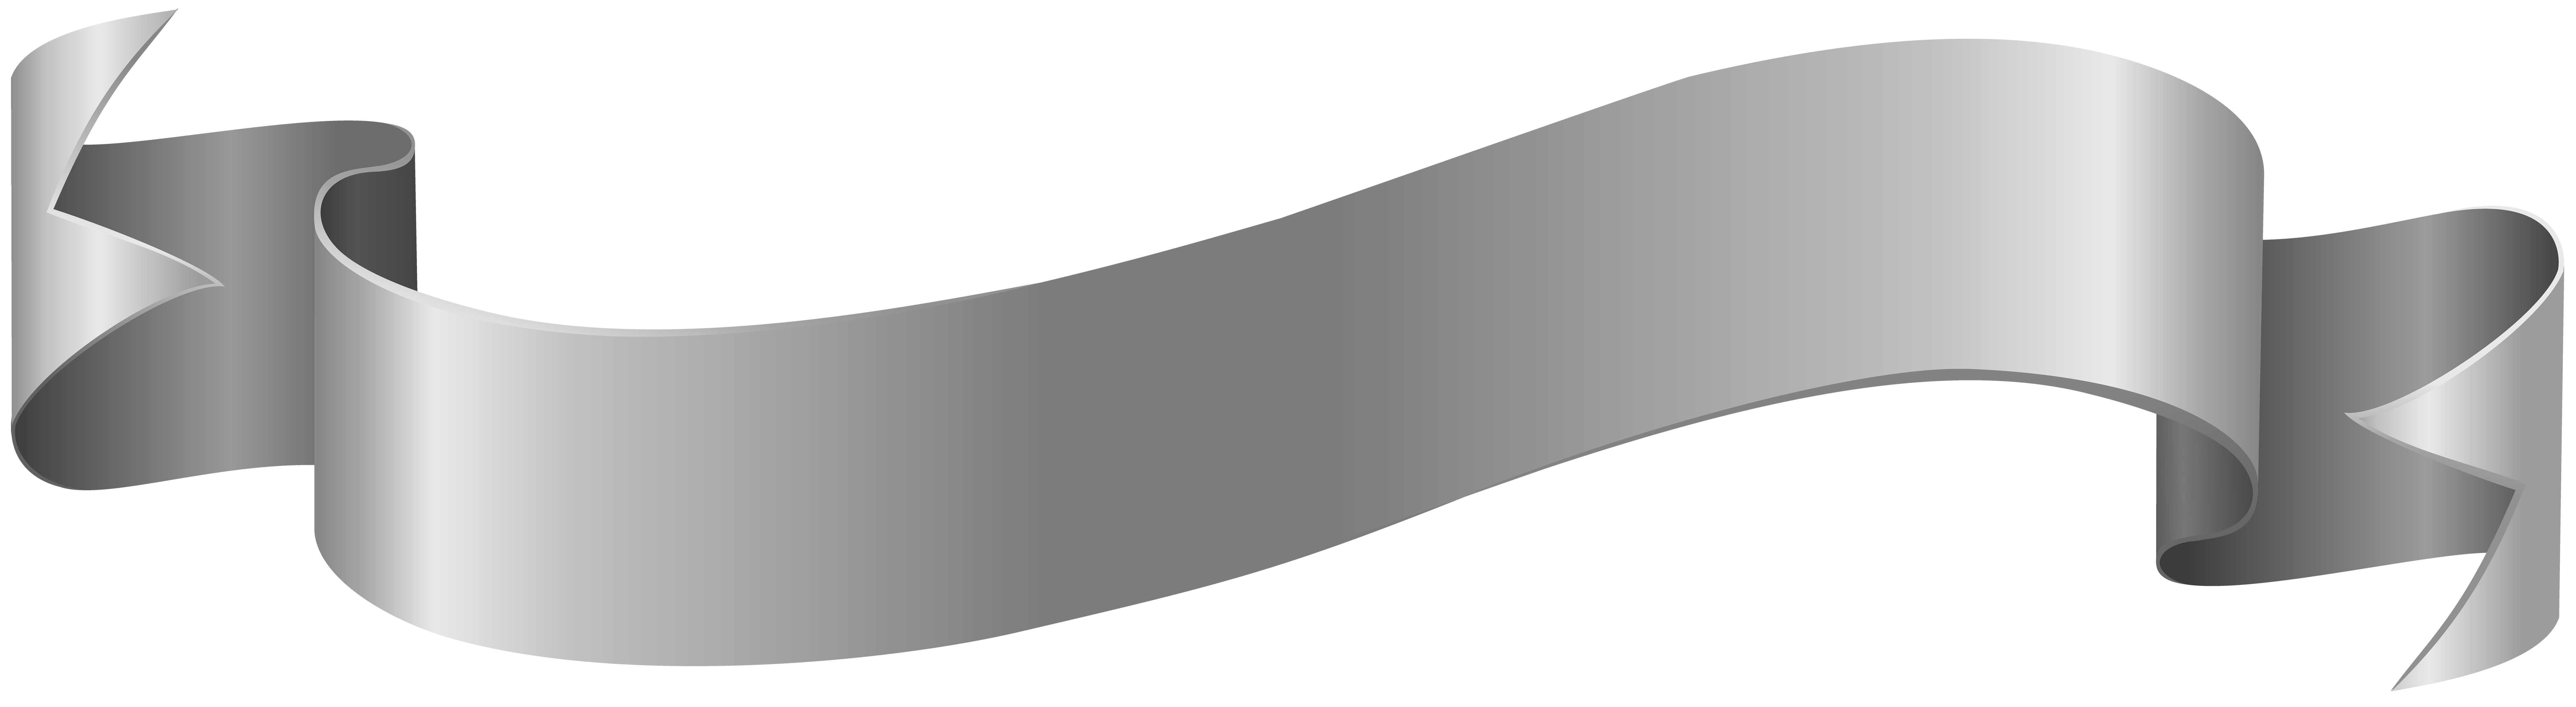 Silver Banner Clip Art PNG Image Gallery Yopriceville